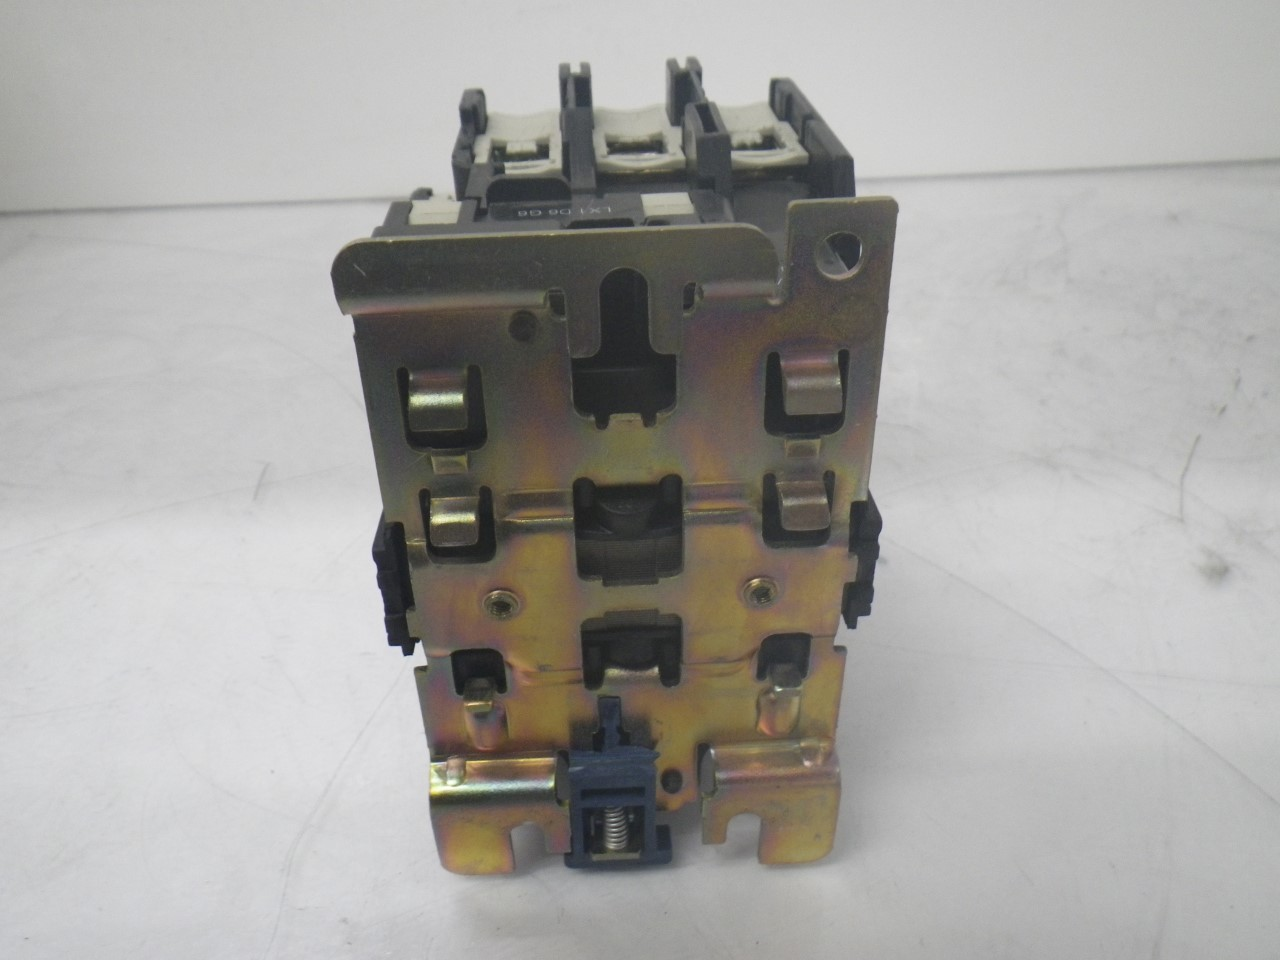 IMGP8343125A, 600V (7)LC1D8011 Telemecanique Contactor Magnetic Power Relay 125a, 600v (Used Tested)